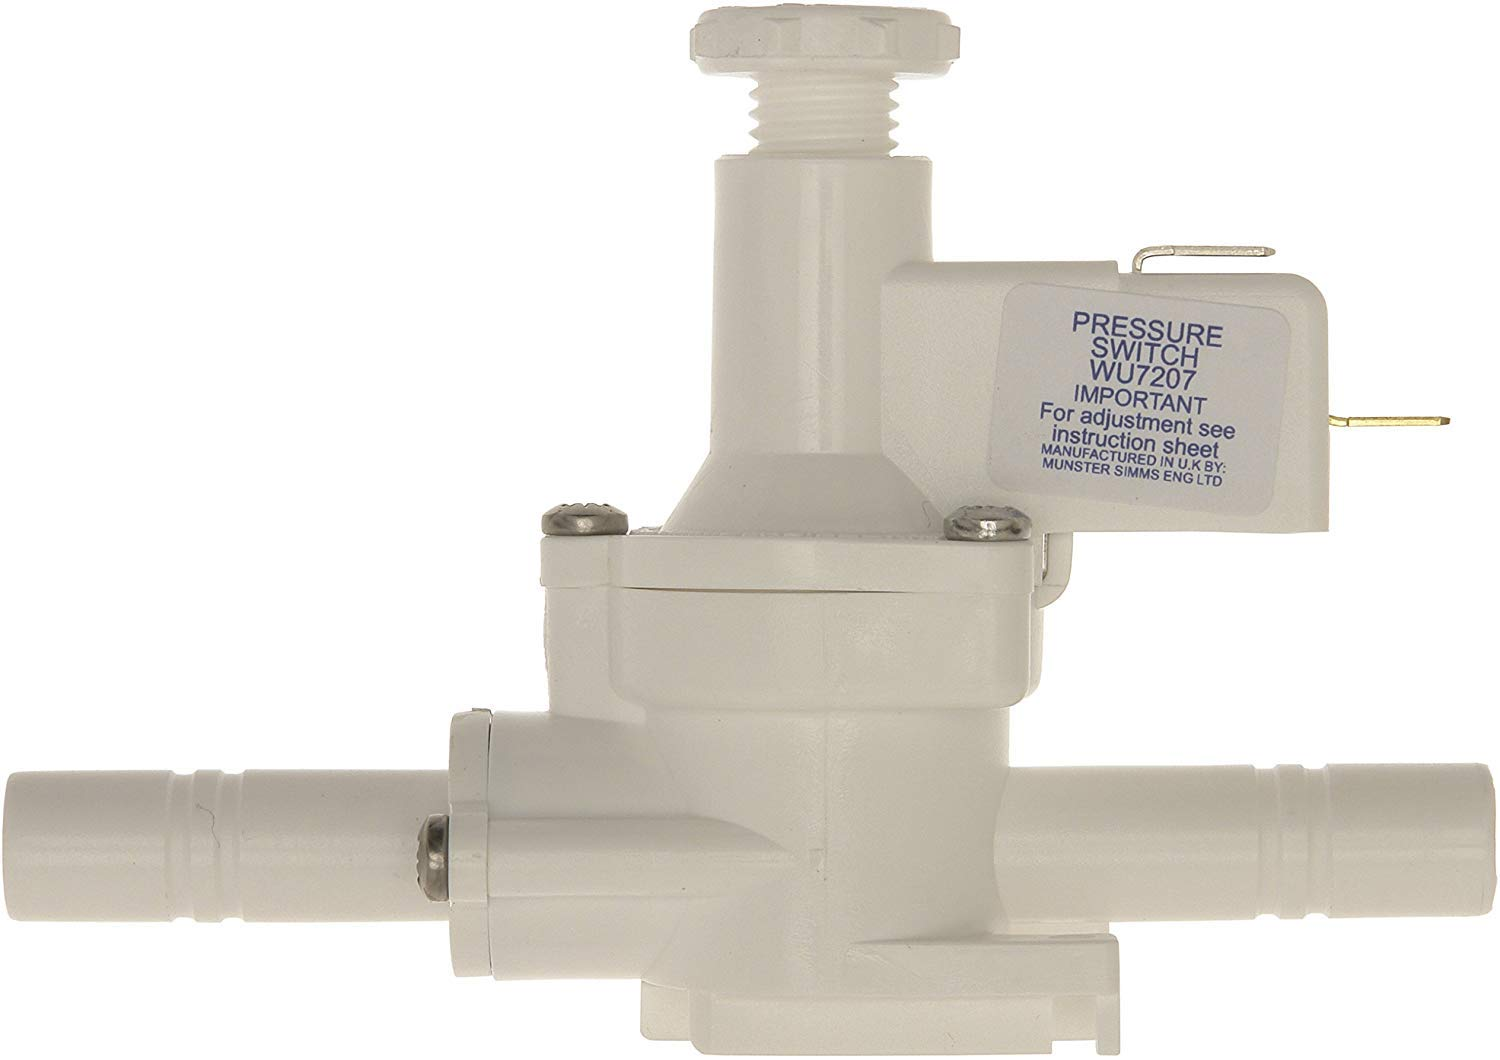 Whale WU7207 Pressure Switch, White